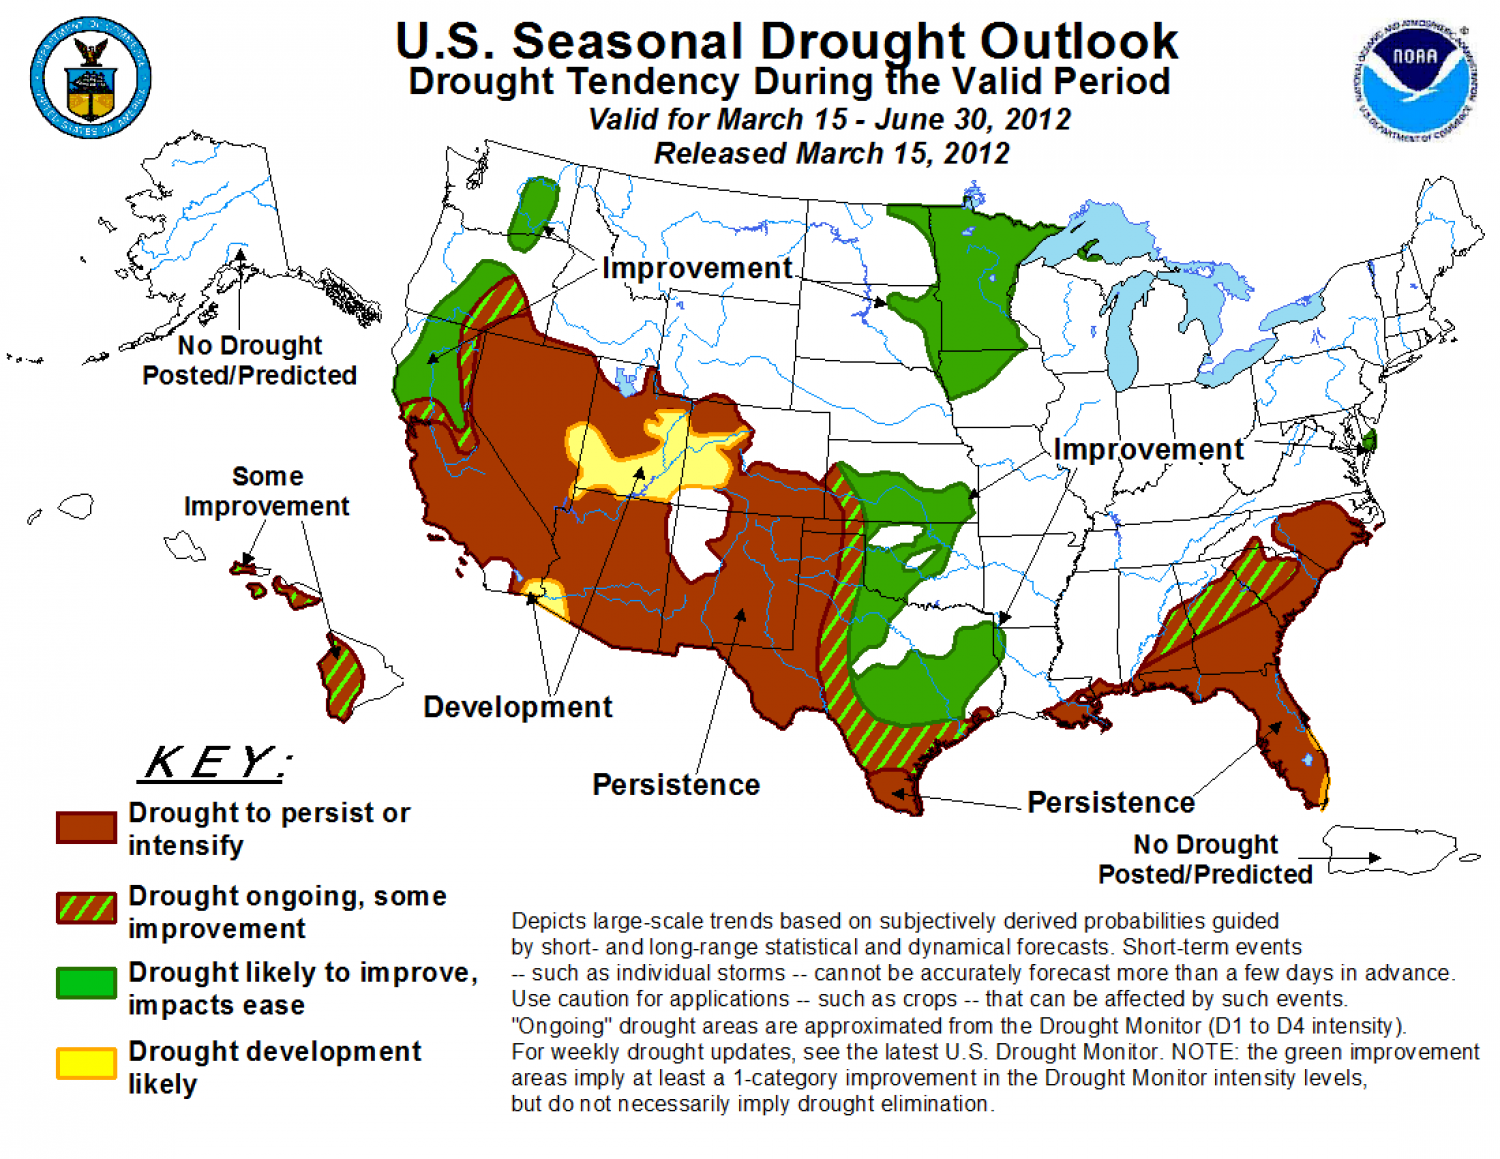 U.S. Seasonal Drought Outlook for 2012 Infographic